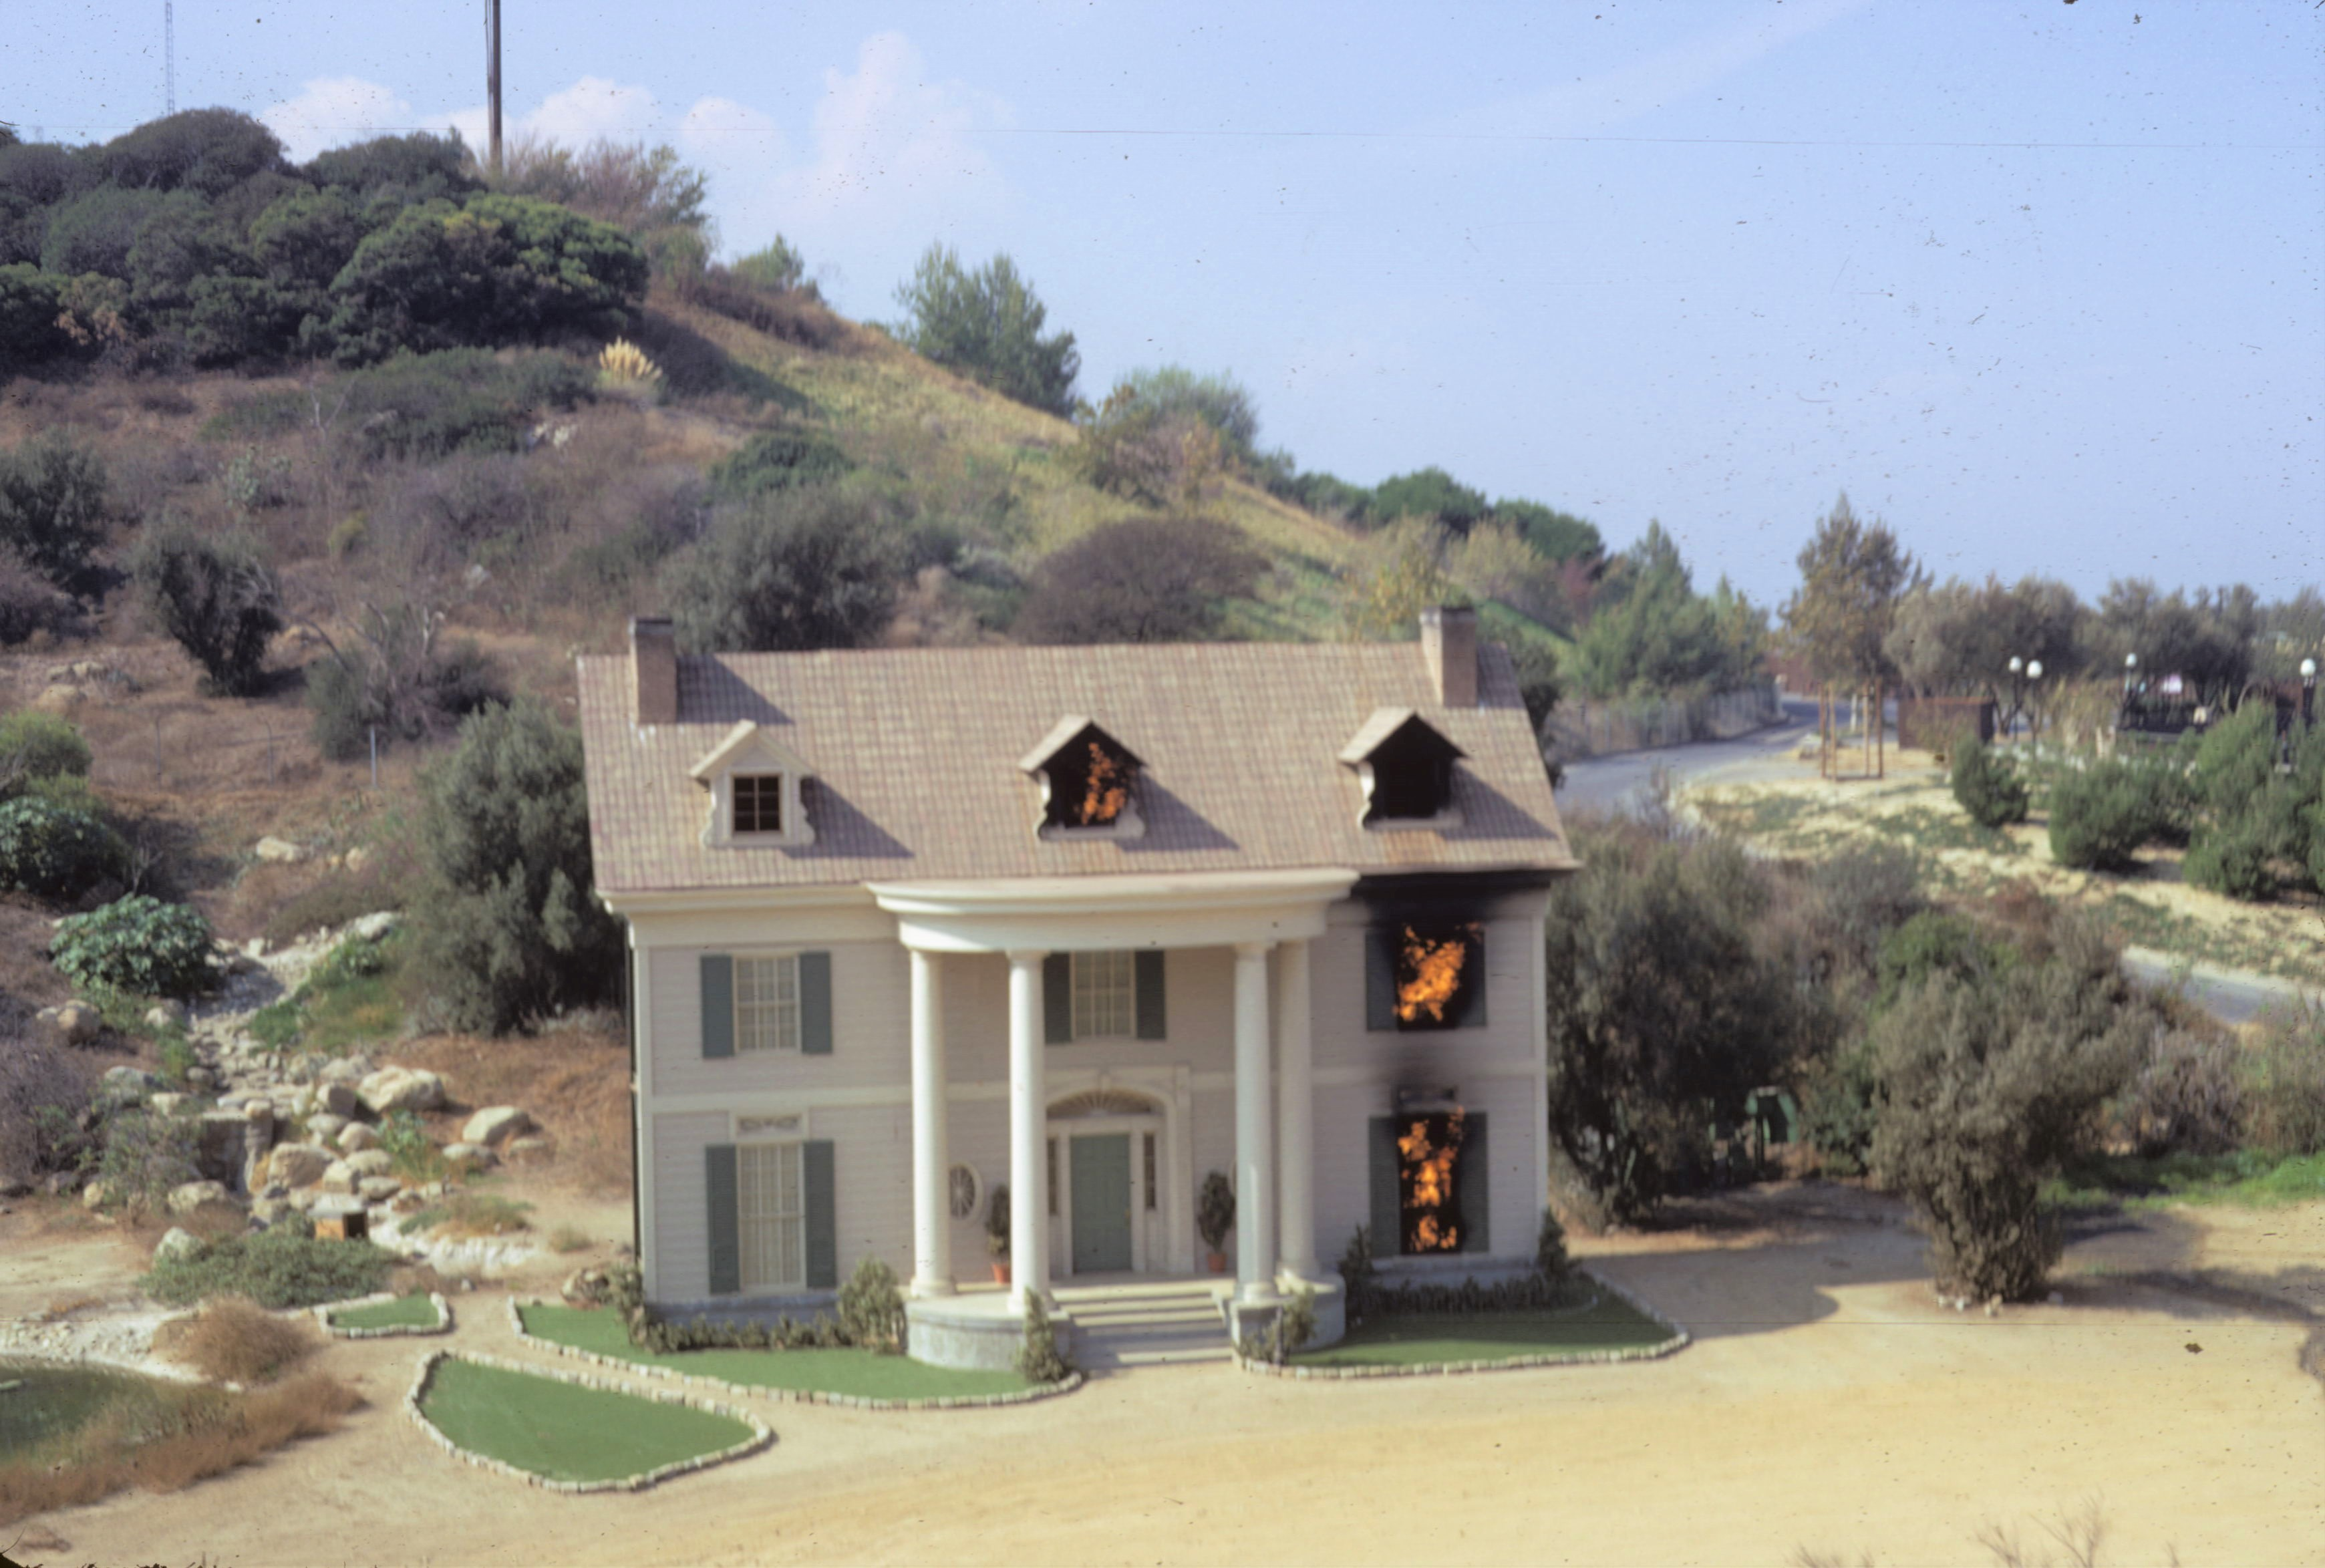 Universal Studios 1972 - House on Fire Exterior Set